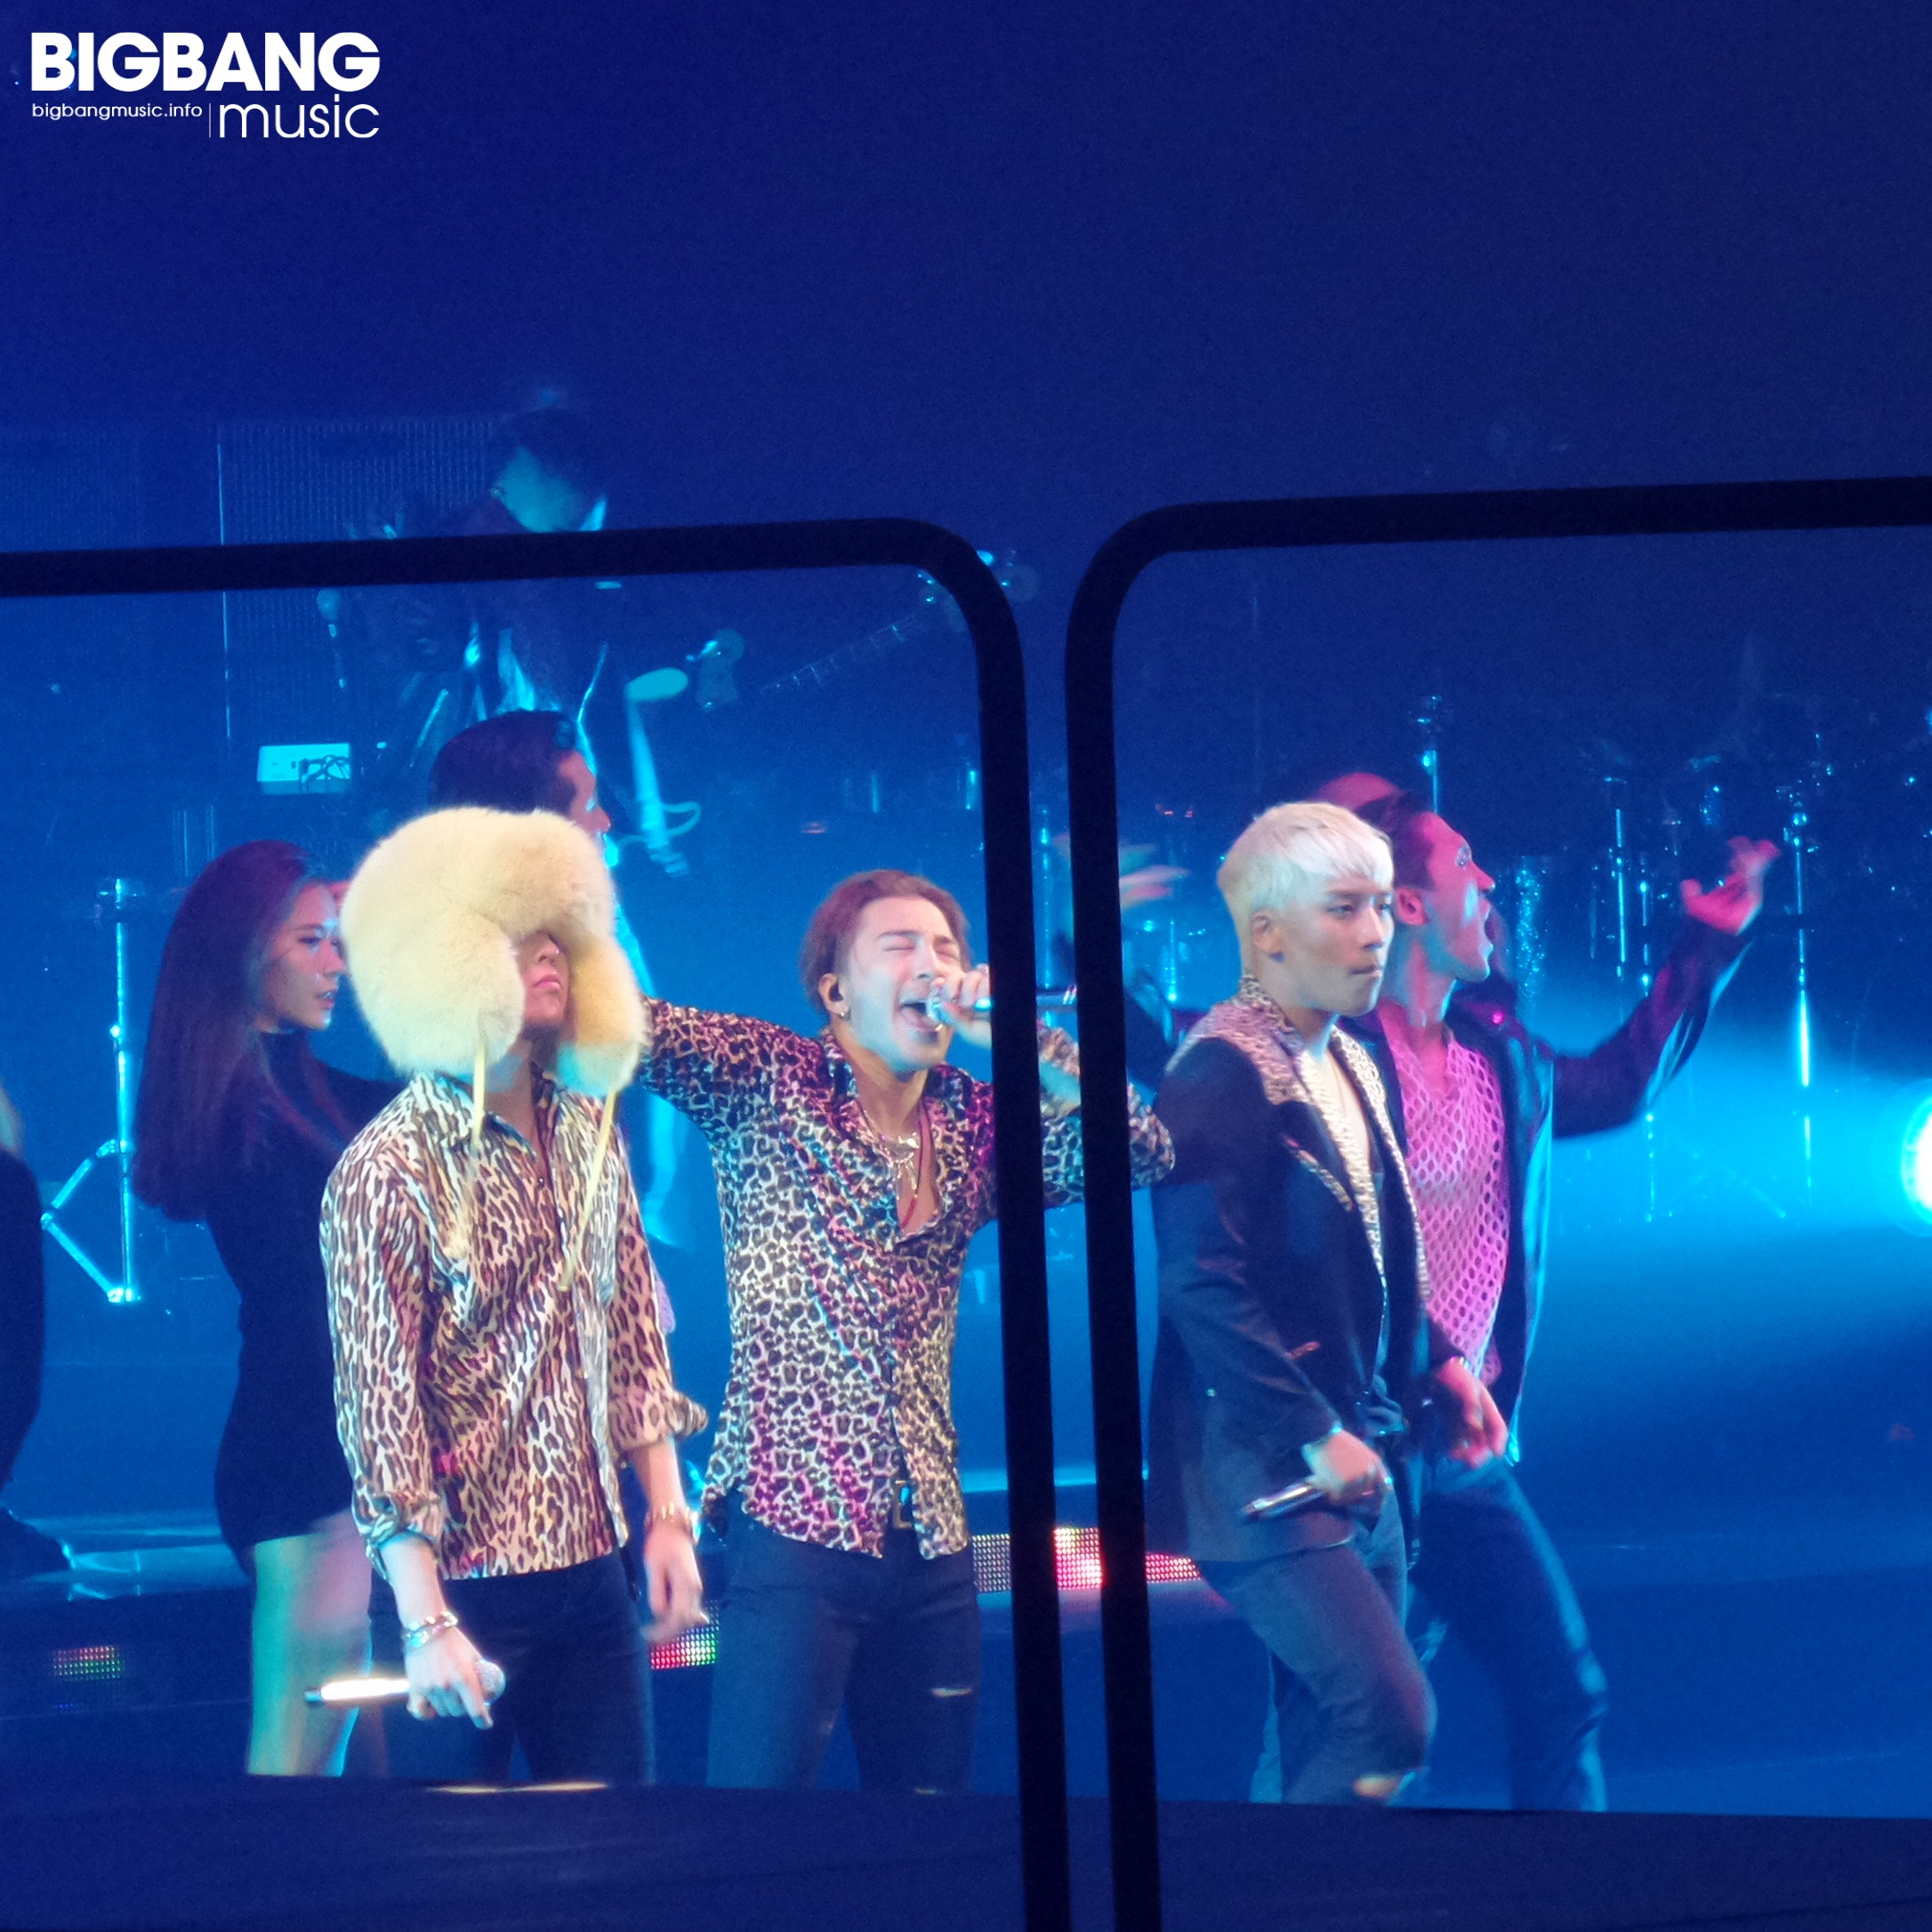 BIGBANG_MADE_in_Anaheim_by_BIGBANGmusic_2015-10-04_3.jpg